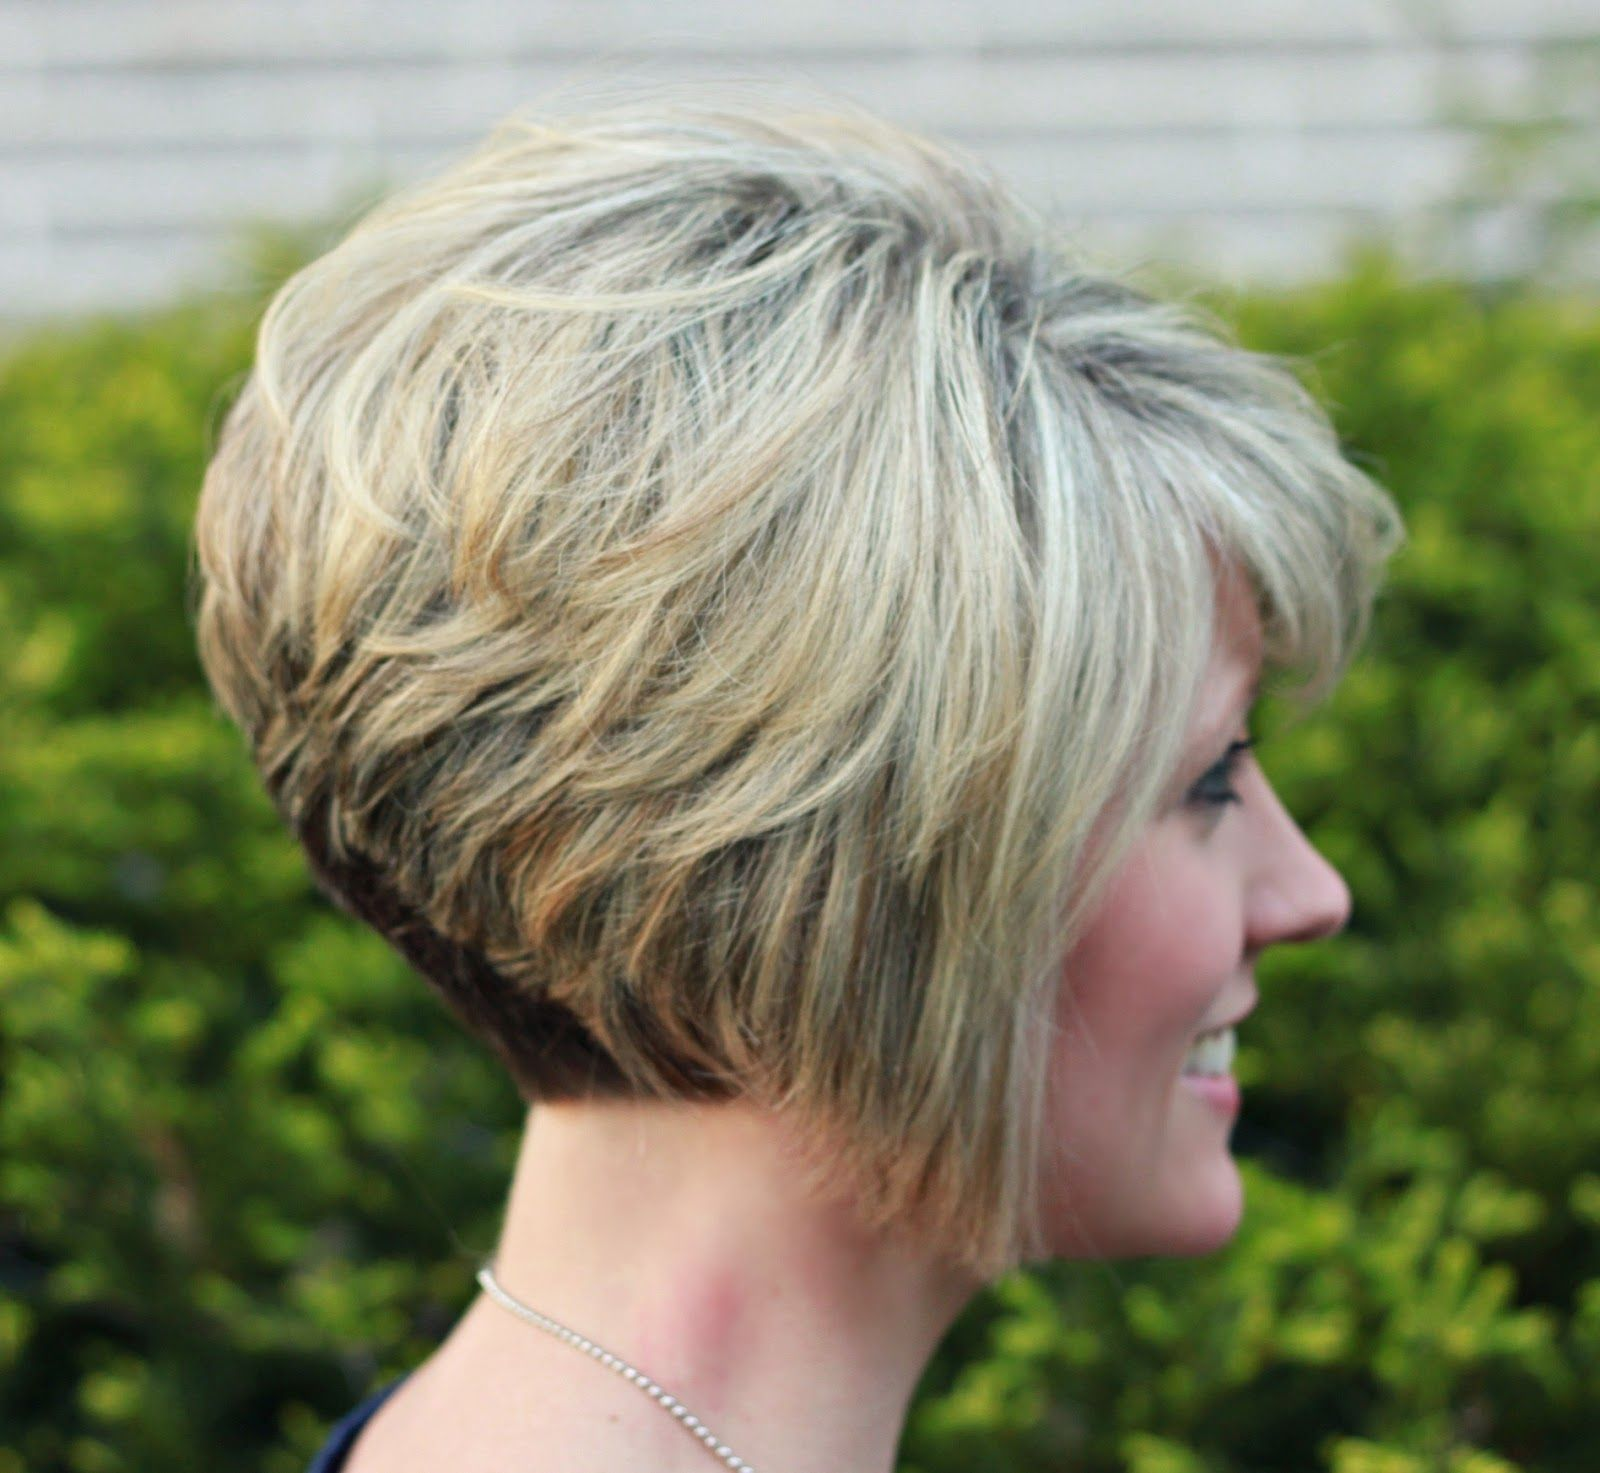 Cu cute bob hairstyles for women over 50 - Short Hair Styles